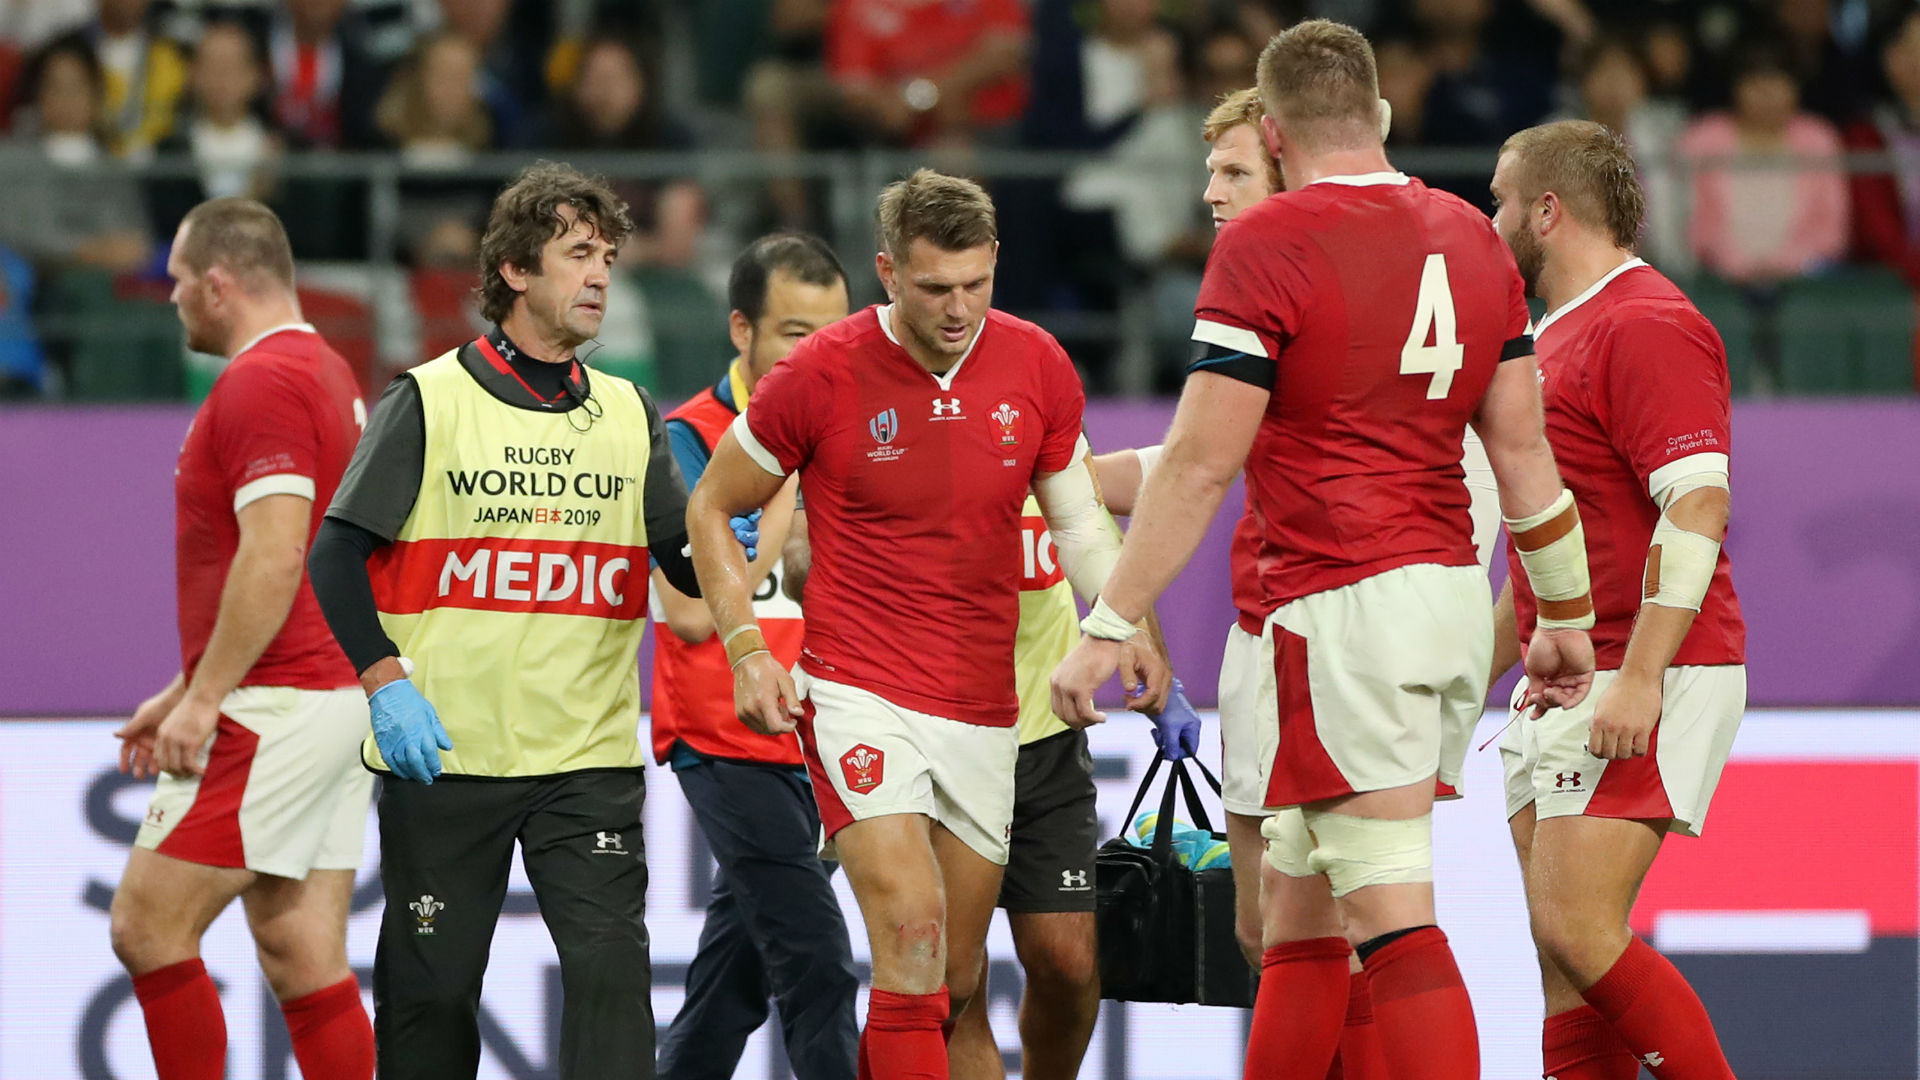 Rugby World Cup 2019: Biggar confident he's 100 per cent fit to play, says Gatland